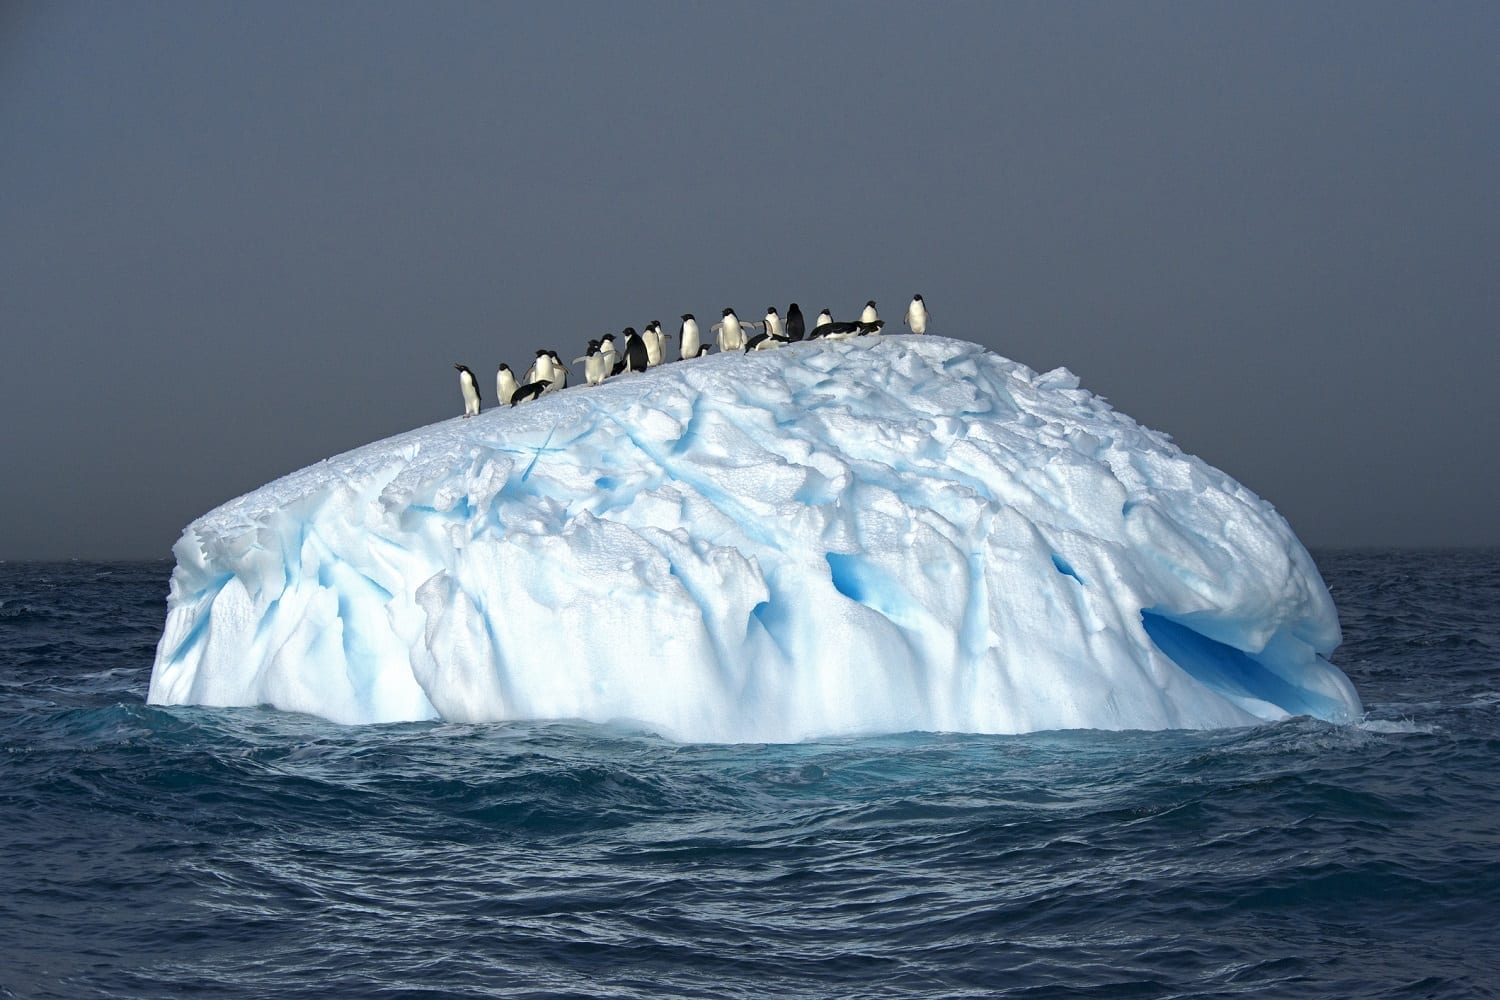 Adelie Penguins on an Iceberg: ID 62125837 © Jonathan R. Green | Dreamstime.com